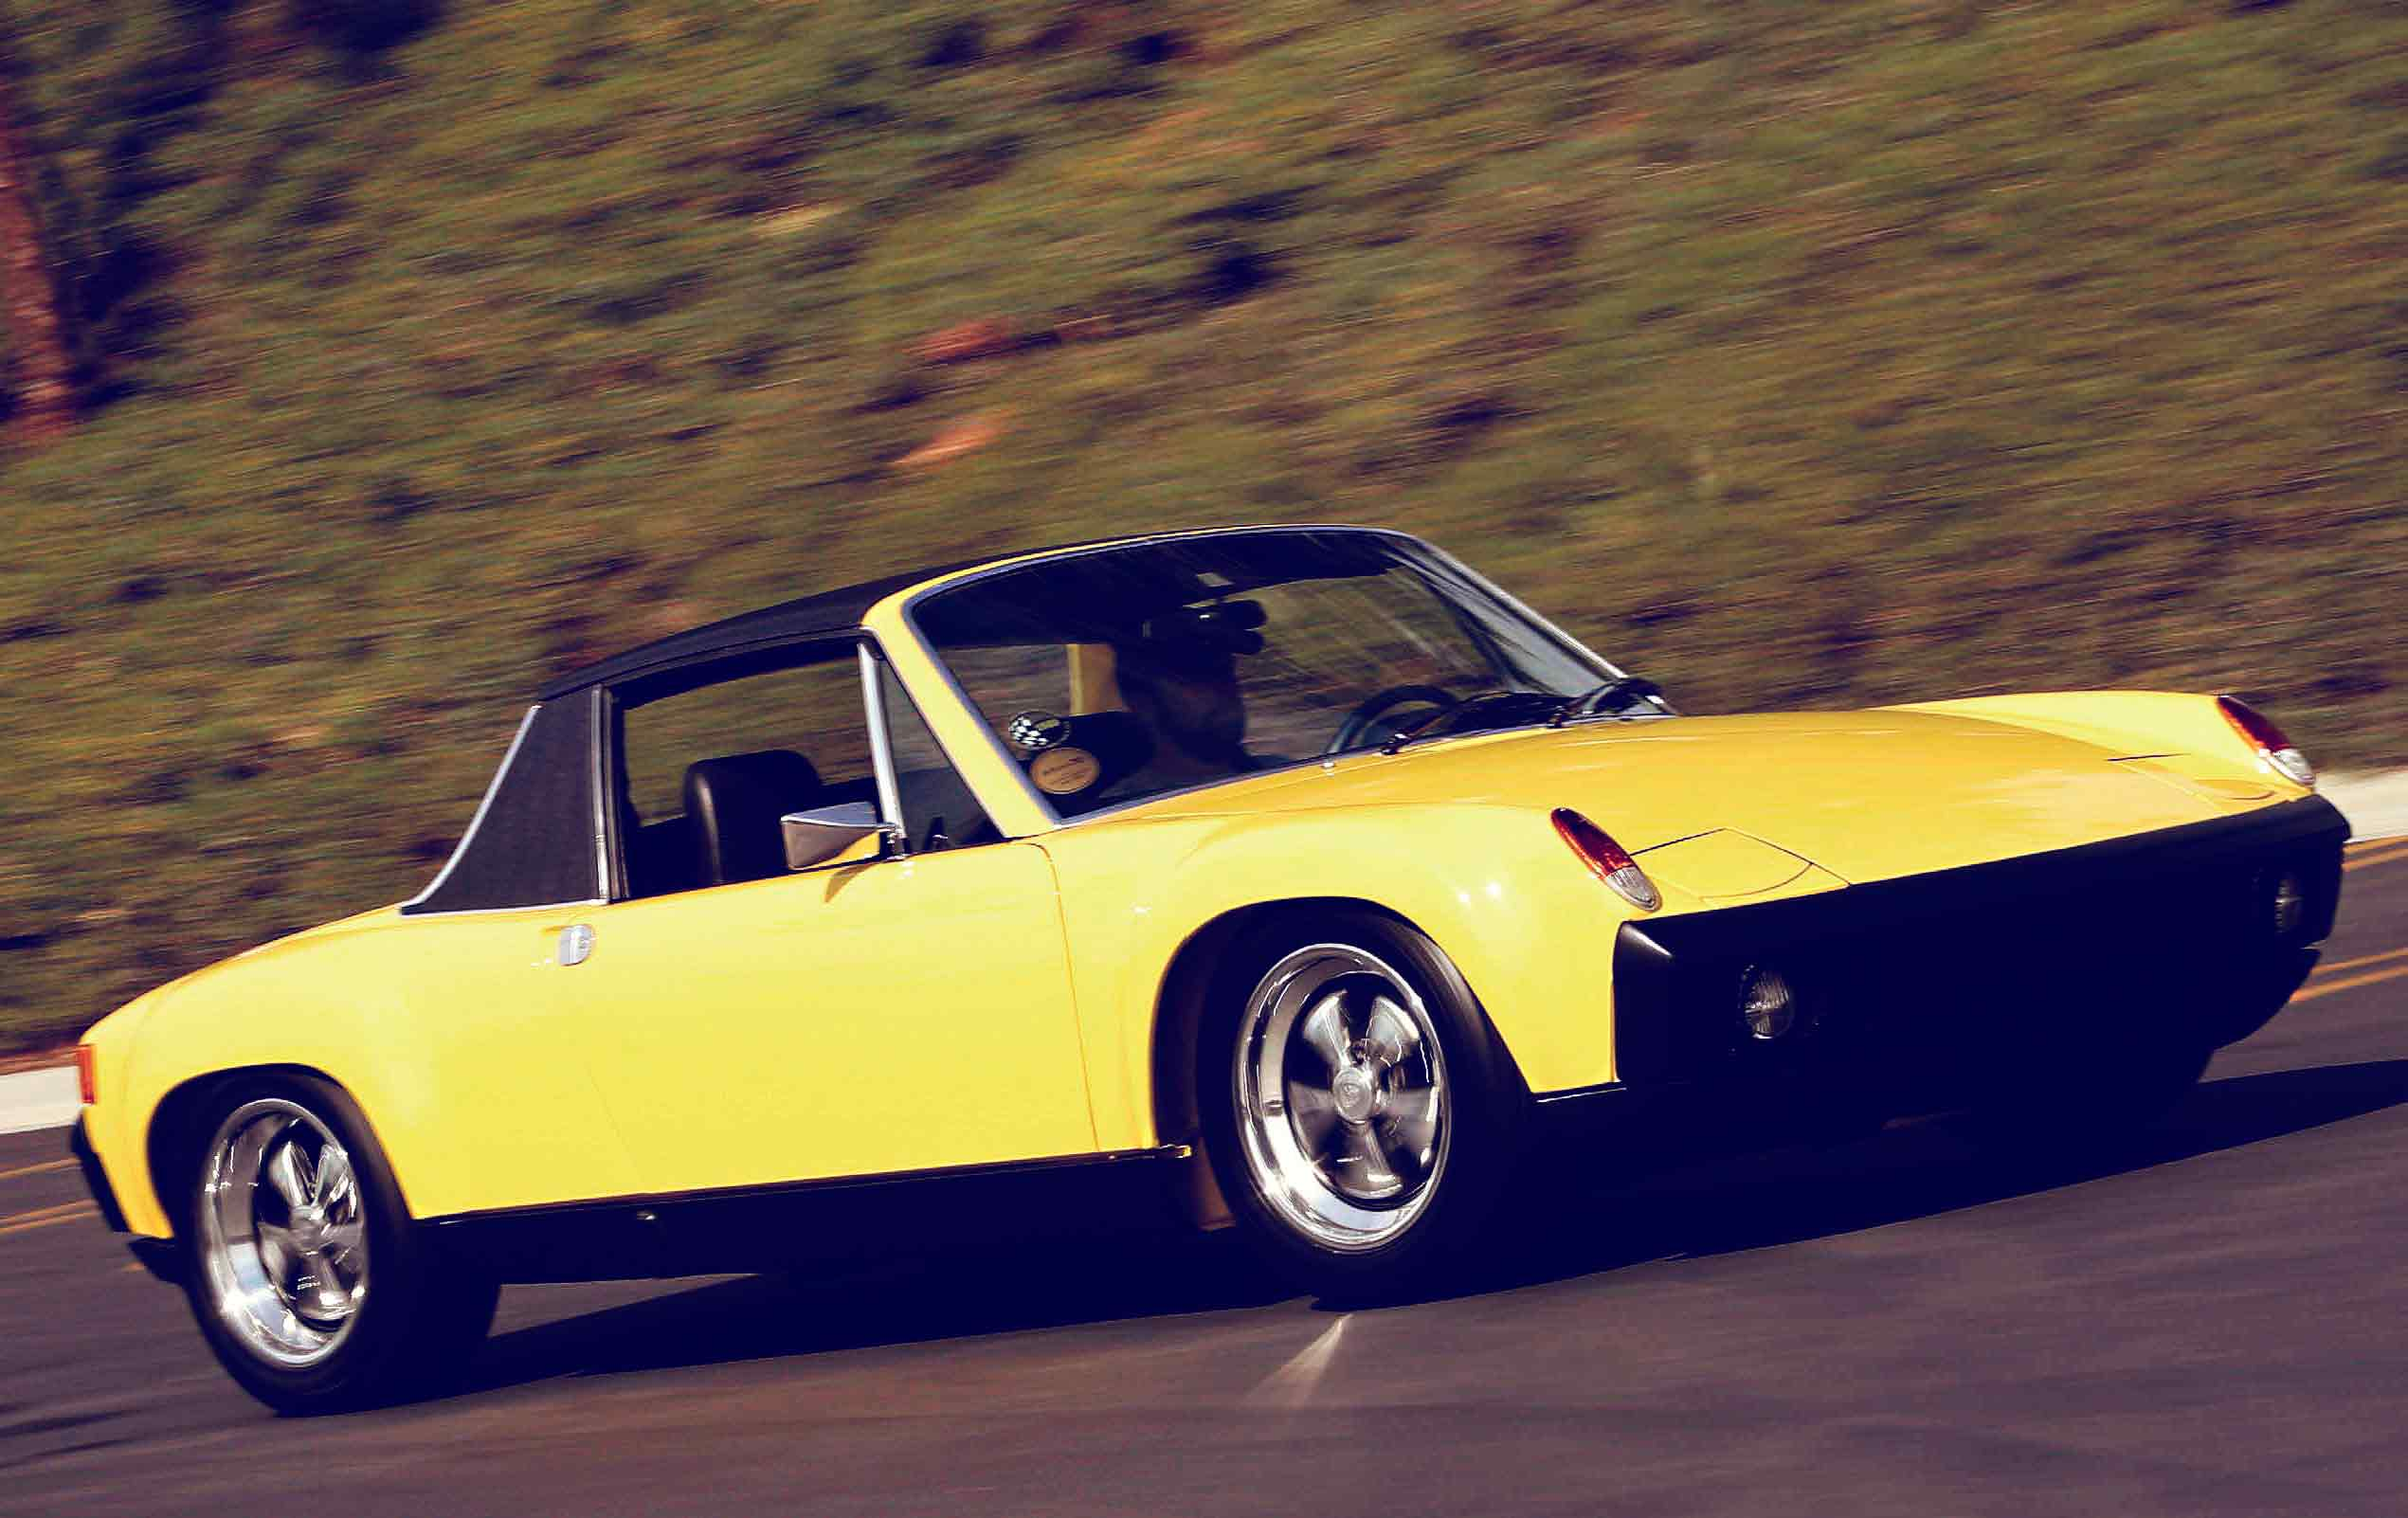 the other outlaw 3 0 litre flat six engine porsche 914 6 drive my blogs drive. Black Bedroom Furniture Sets. Home Design Ideas